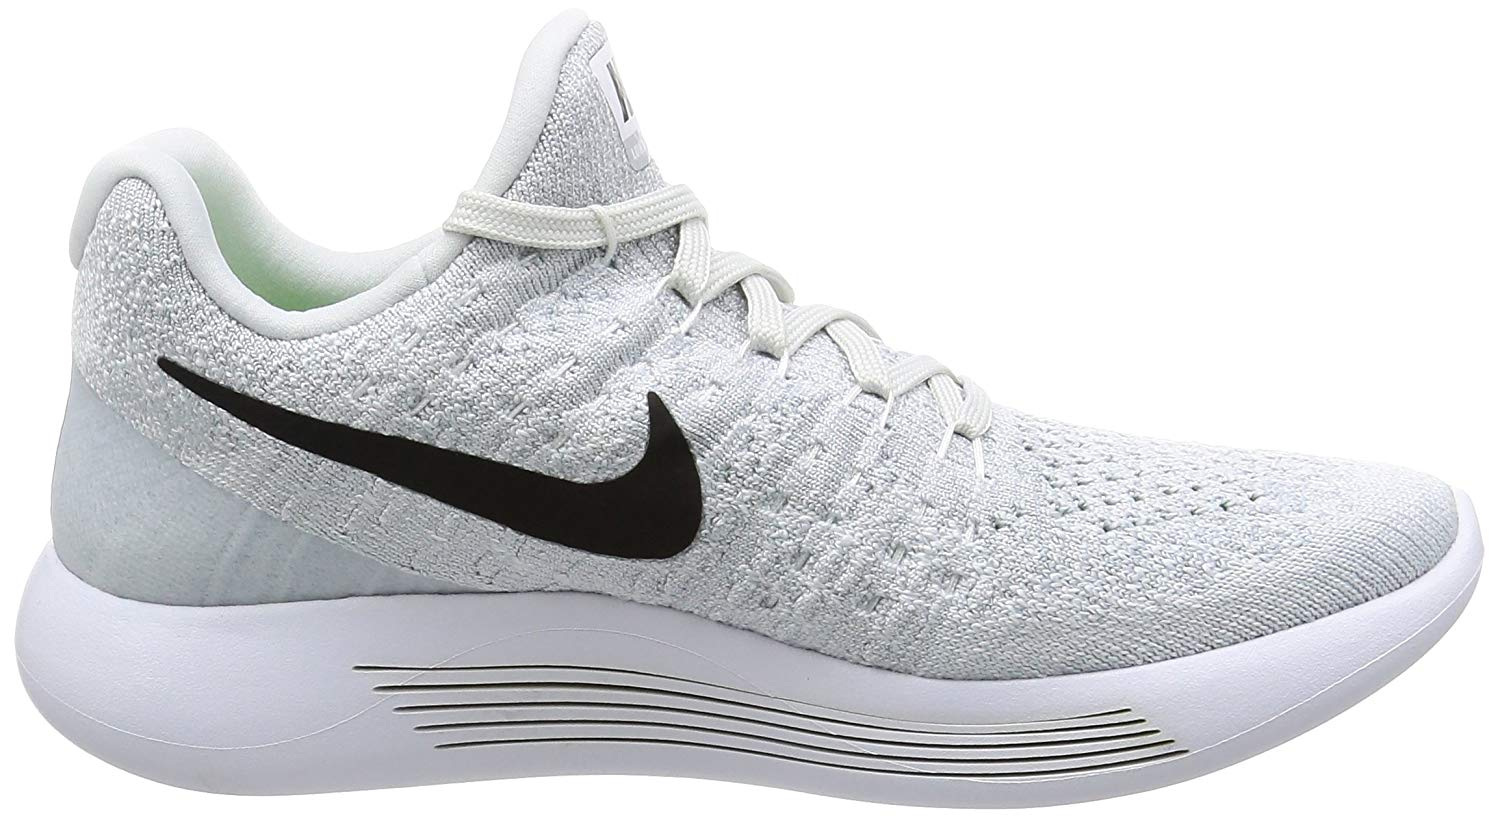 e414b10b3a26d Nike Womens Lunarepic Low Flyknit 2 Fabric Low Top Lace Up Running ...